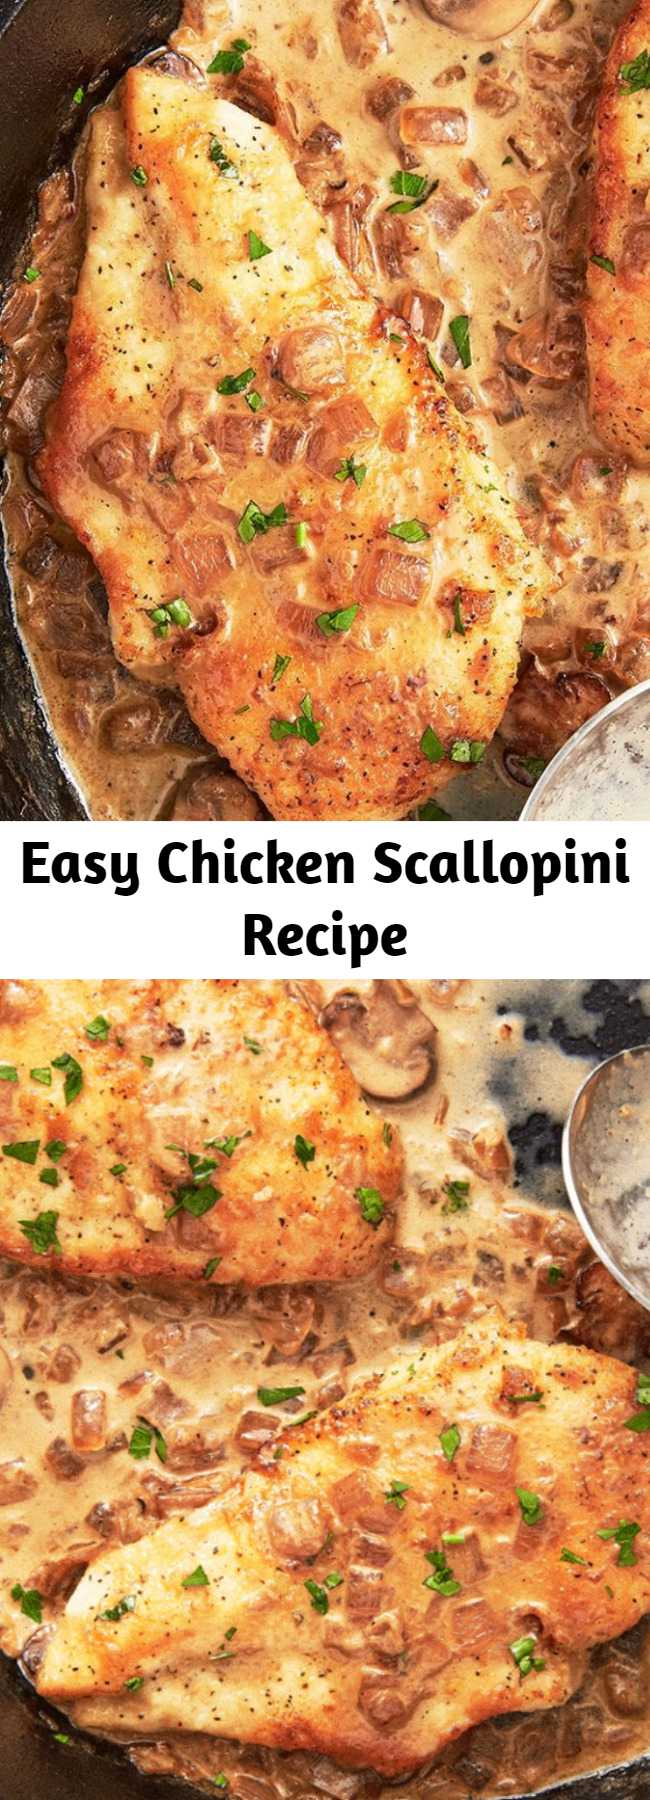 Easy Chicken Scallopini Recipe - This meal is the perfect combo for a weeknight meal: perfectly light but still hearty. #easy #chicken #scallopini #sauce #mushrooms #recipes #lemon #best #creamy